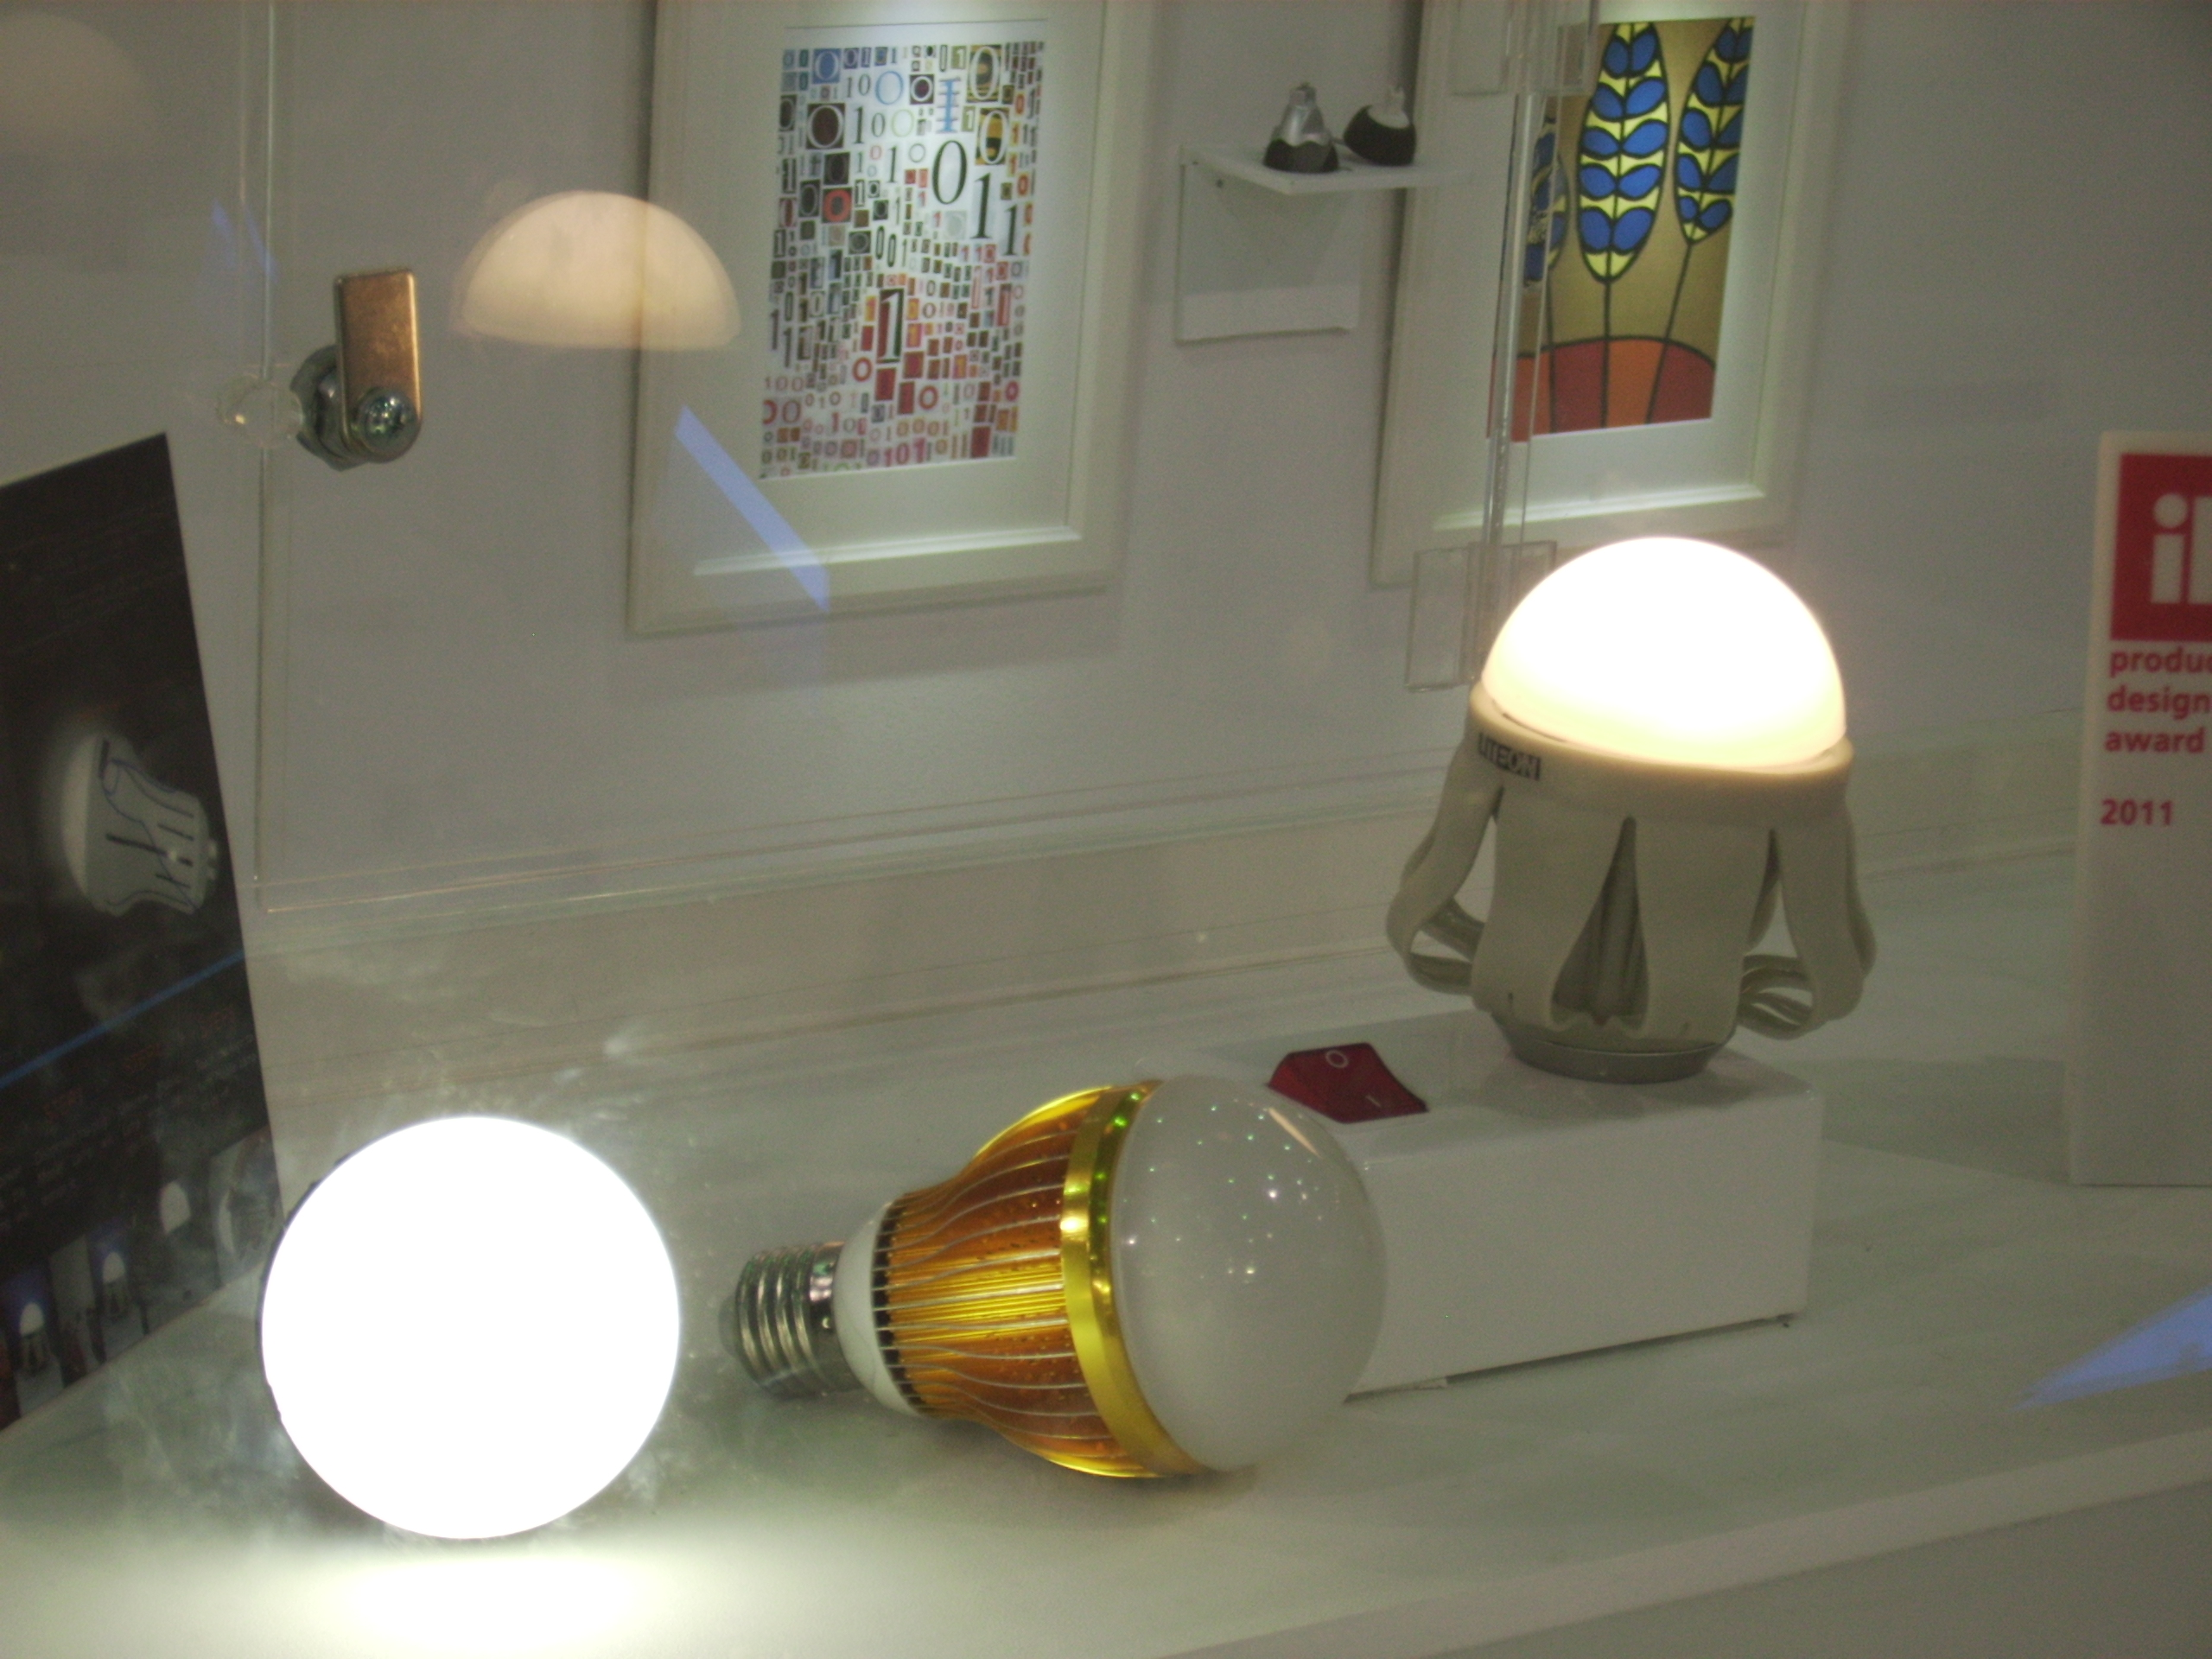 Price delcine to remain market trend for LED light bulbs in 2014.